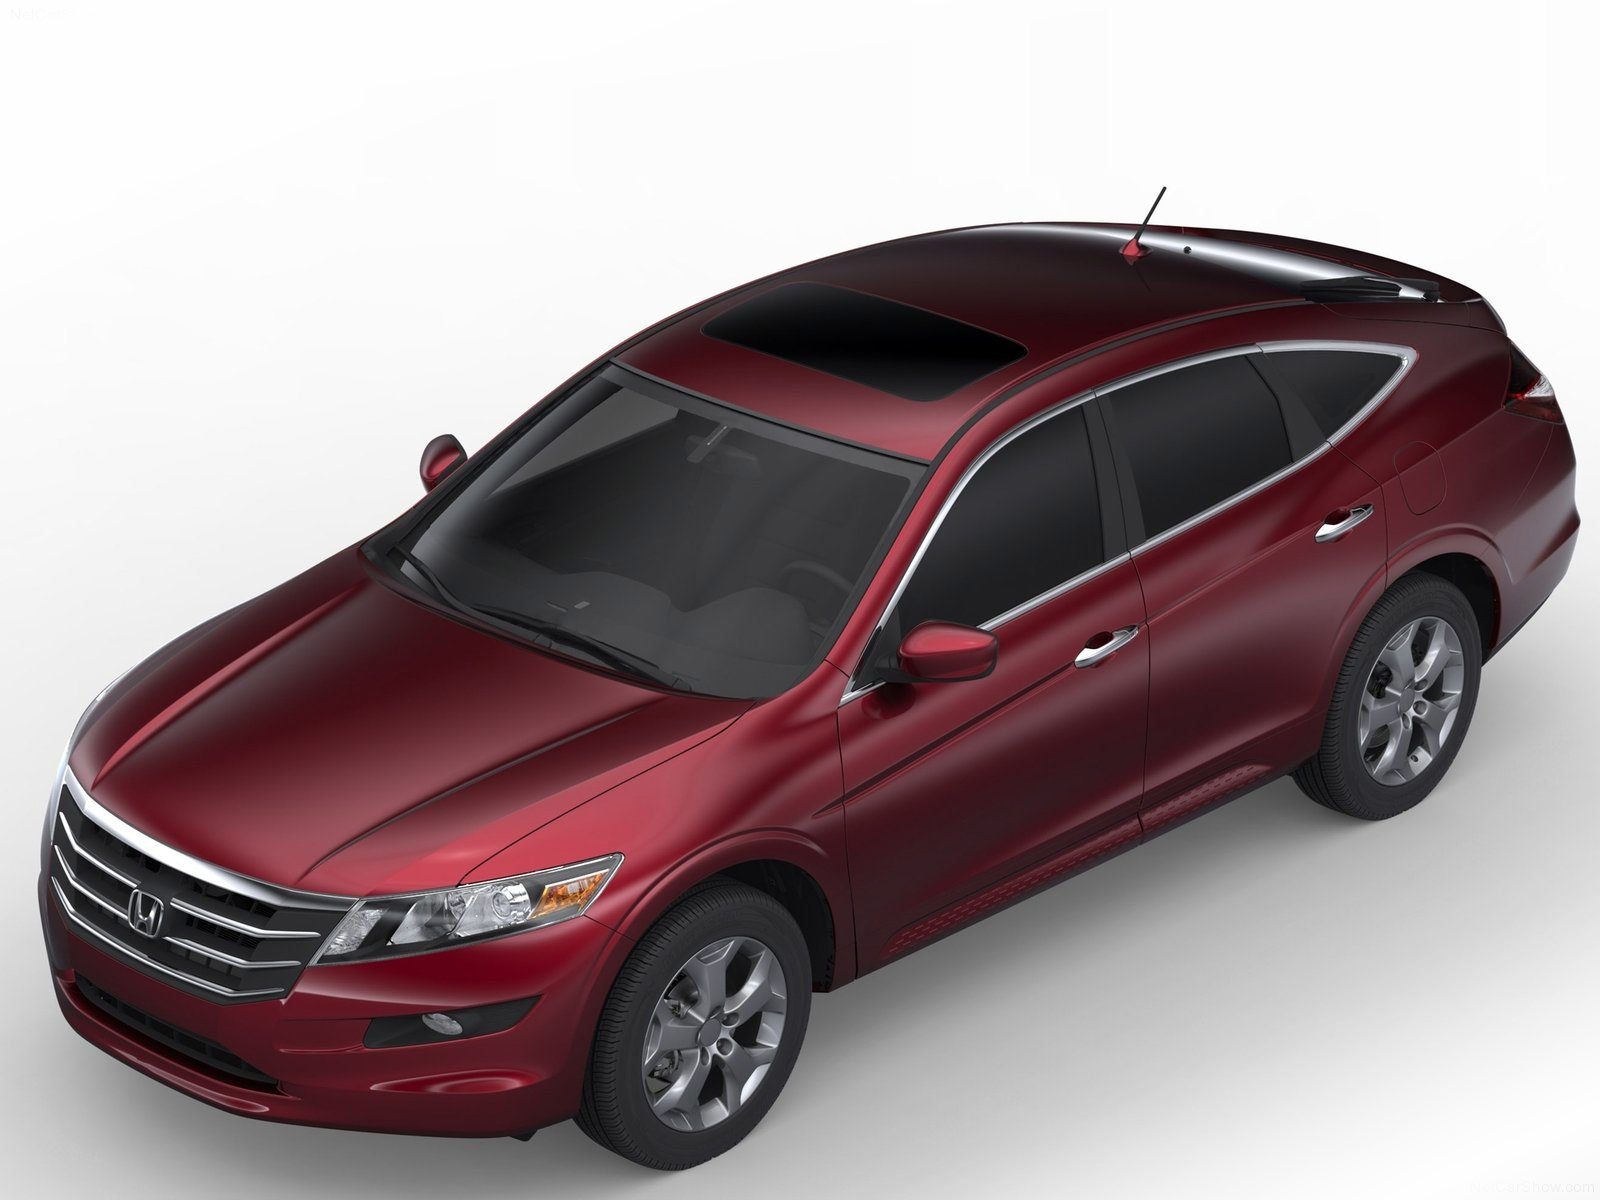 New 2012 Honda Crosstour Japanese Car Photos On This Month